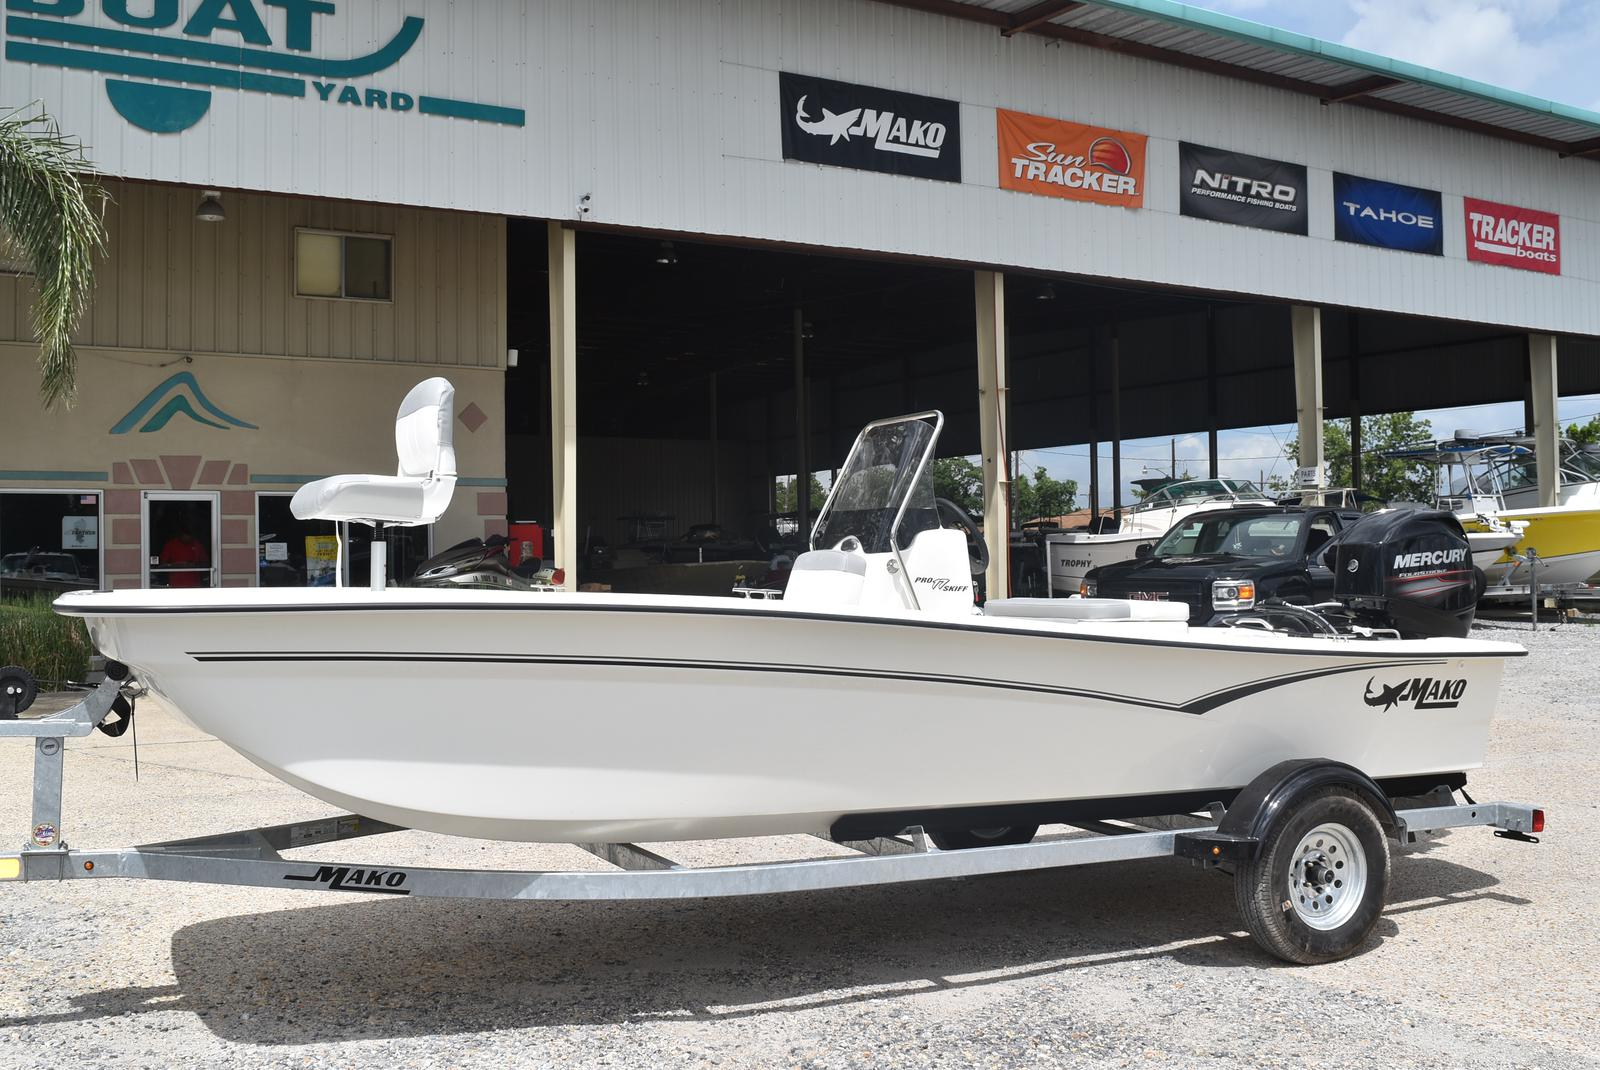 2020 Mako boat for sale, model of the boat is Pro Skiff 17, 75 ELPT & Image # 144 of 702